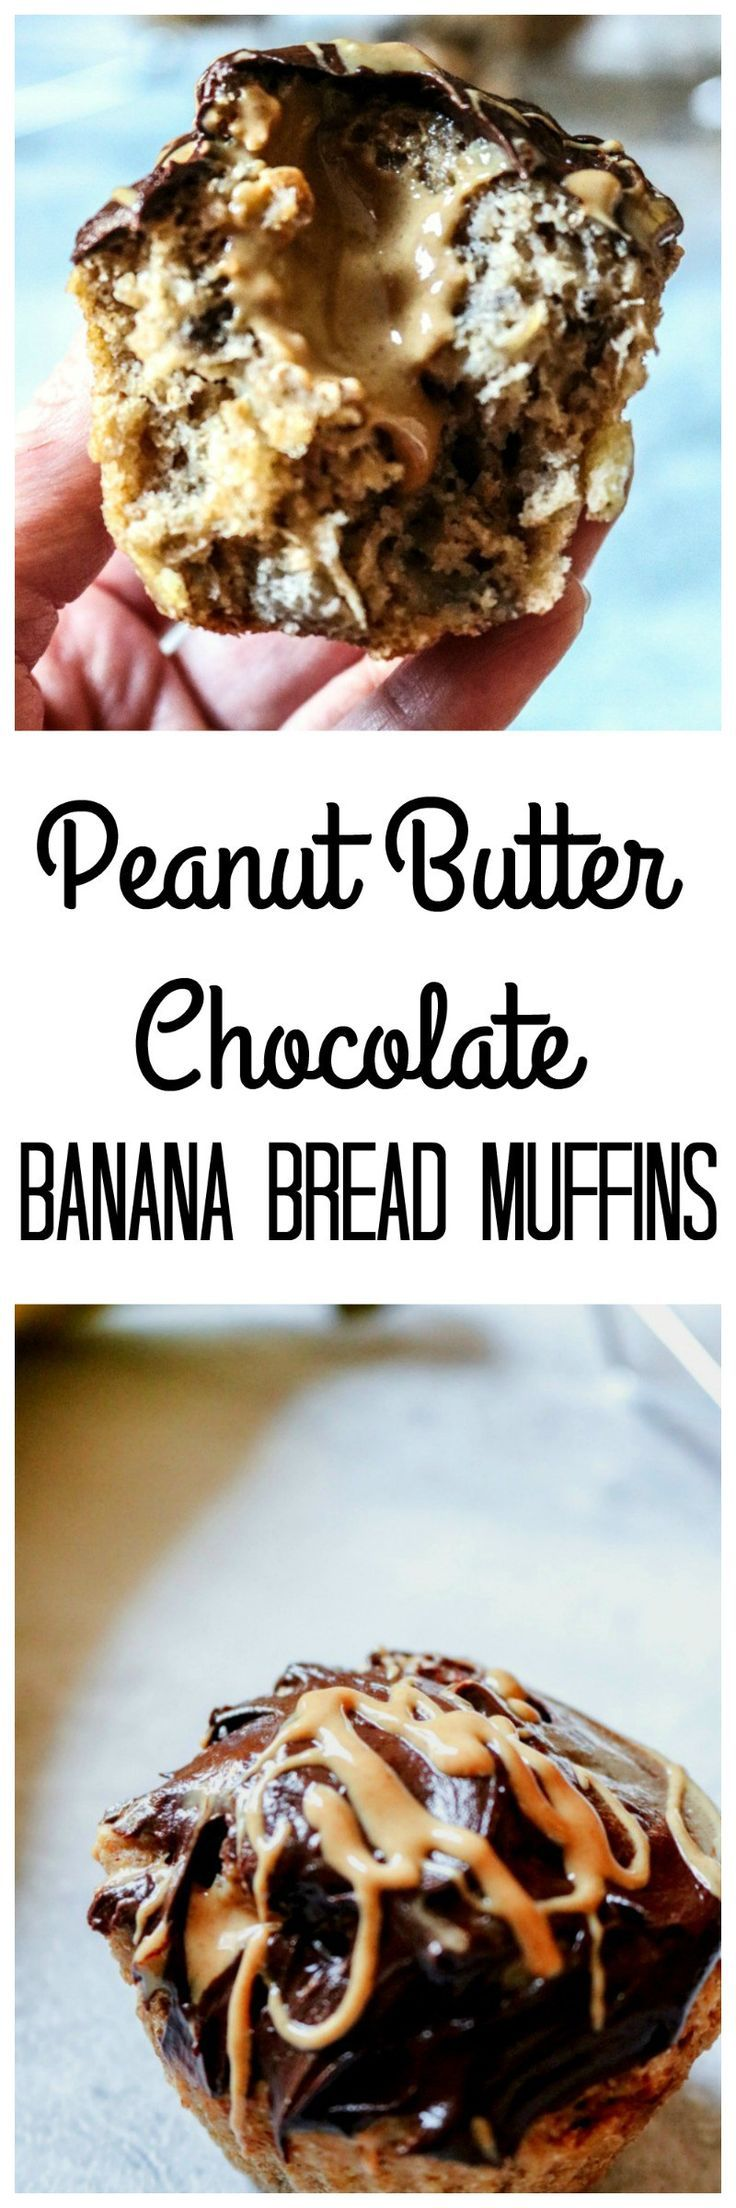 Peanut Butter Chocolate Banana Bread Muffins: A whole wheat banana bread muffin is stuffed with peanut butter and then topped with a rich chocolate ganache, for an out of this world muffin that is healthy enough for breakfast, yet decadent enough for dessert.